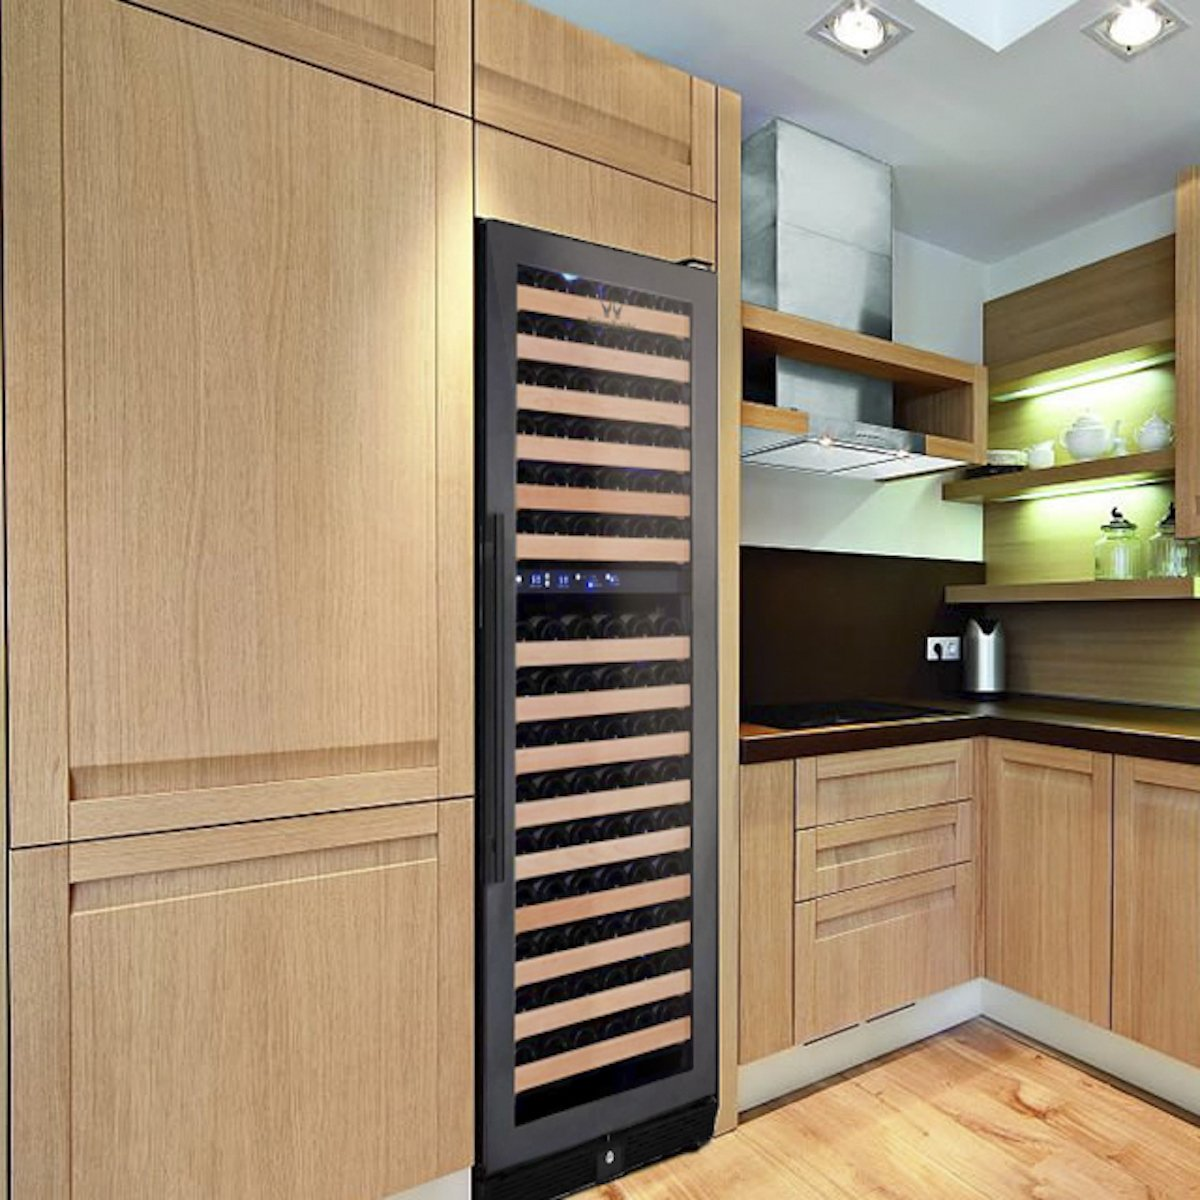 164 Bottle Large Wine Refrigerator With Glass Door